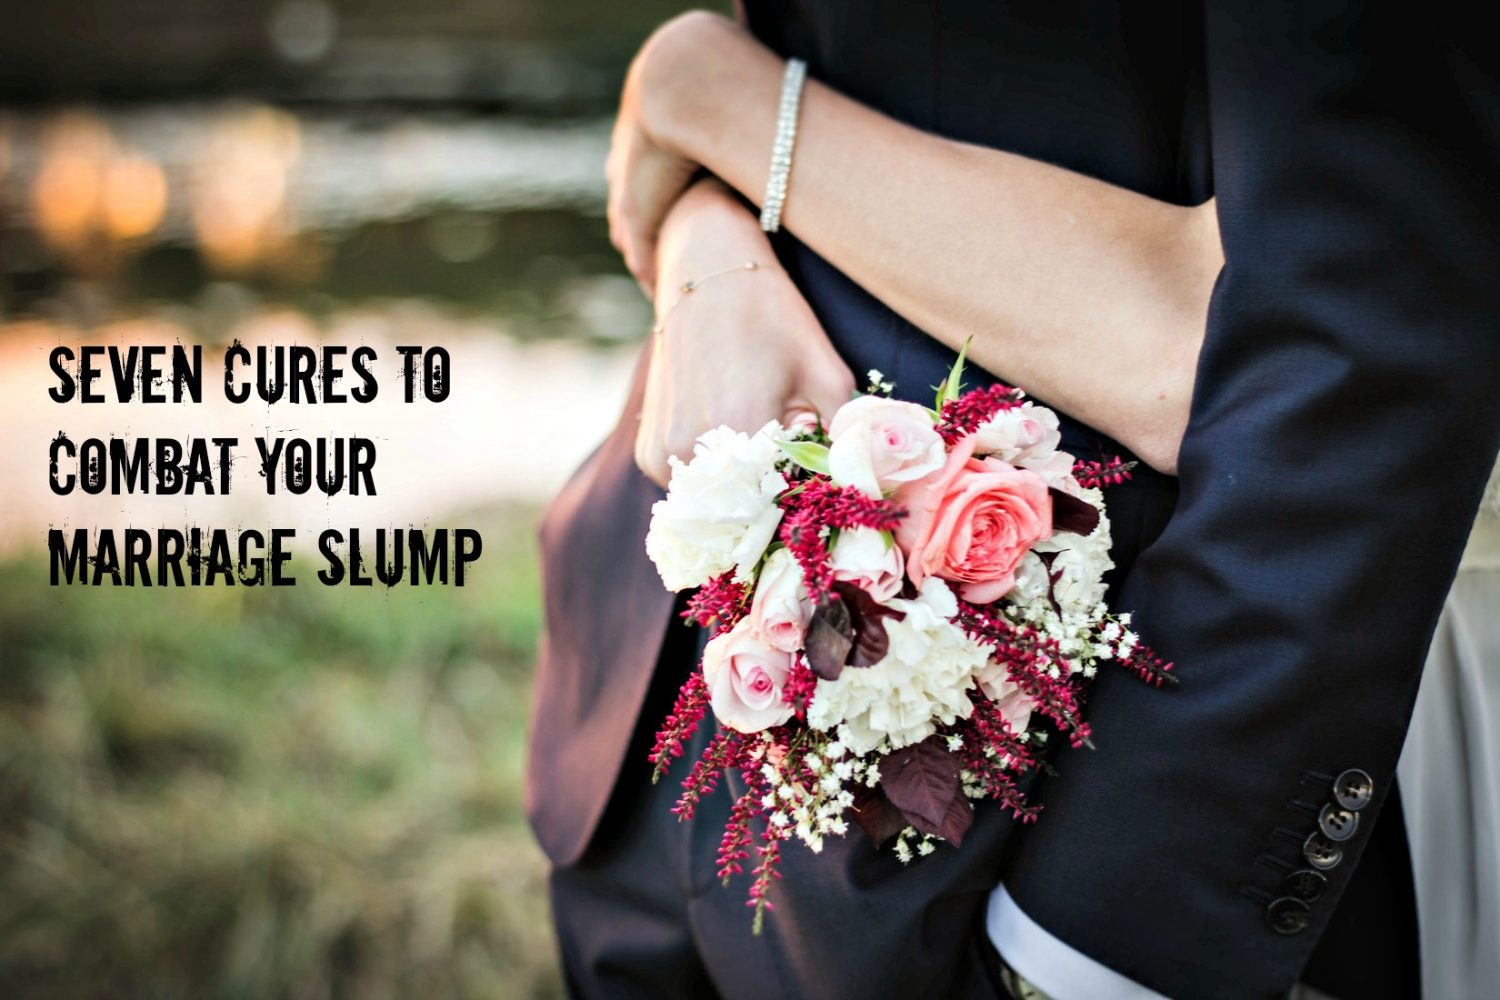 SEVEN Cures to Combat your Marriage Slump